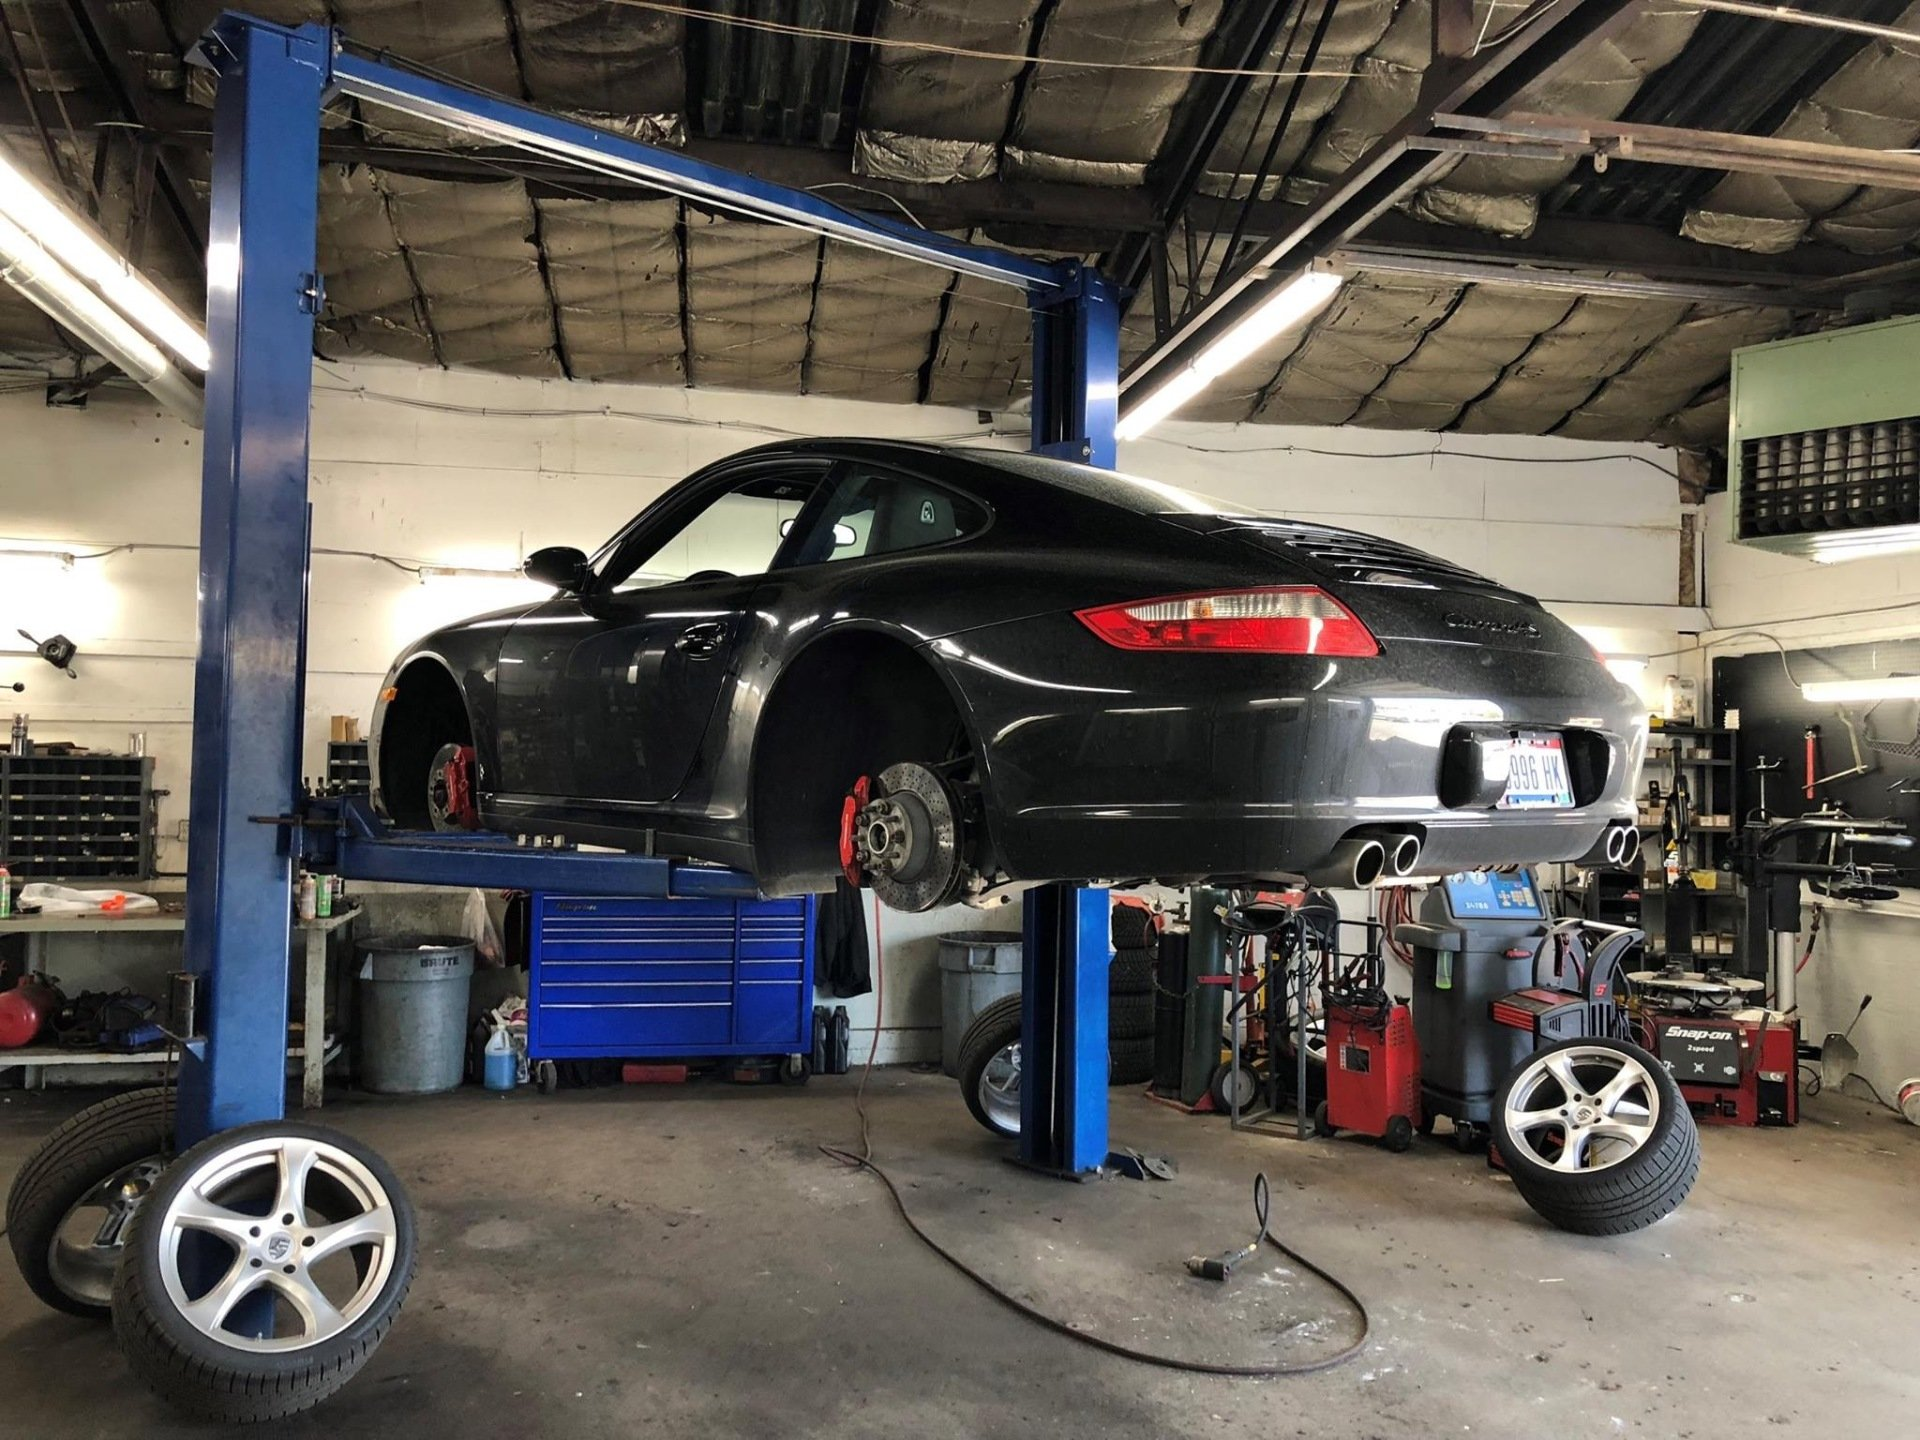 European auto service car parts columbus oh order your parts from tha for your next do it yourself project solutioingenieria Gallery